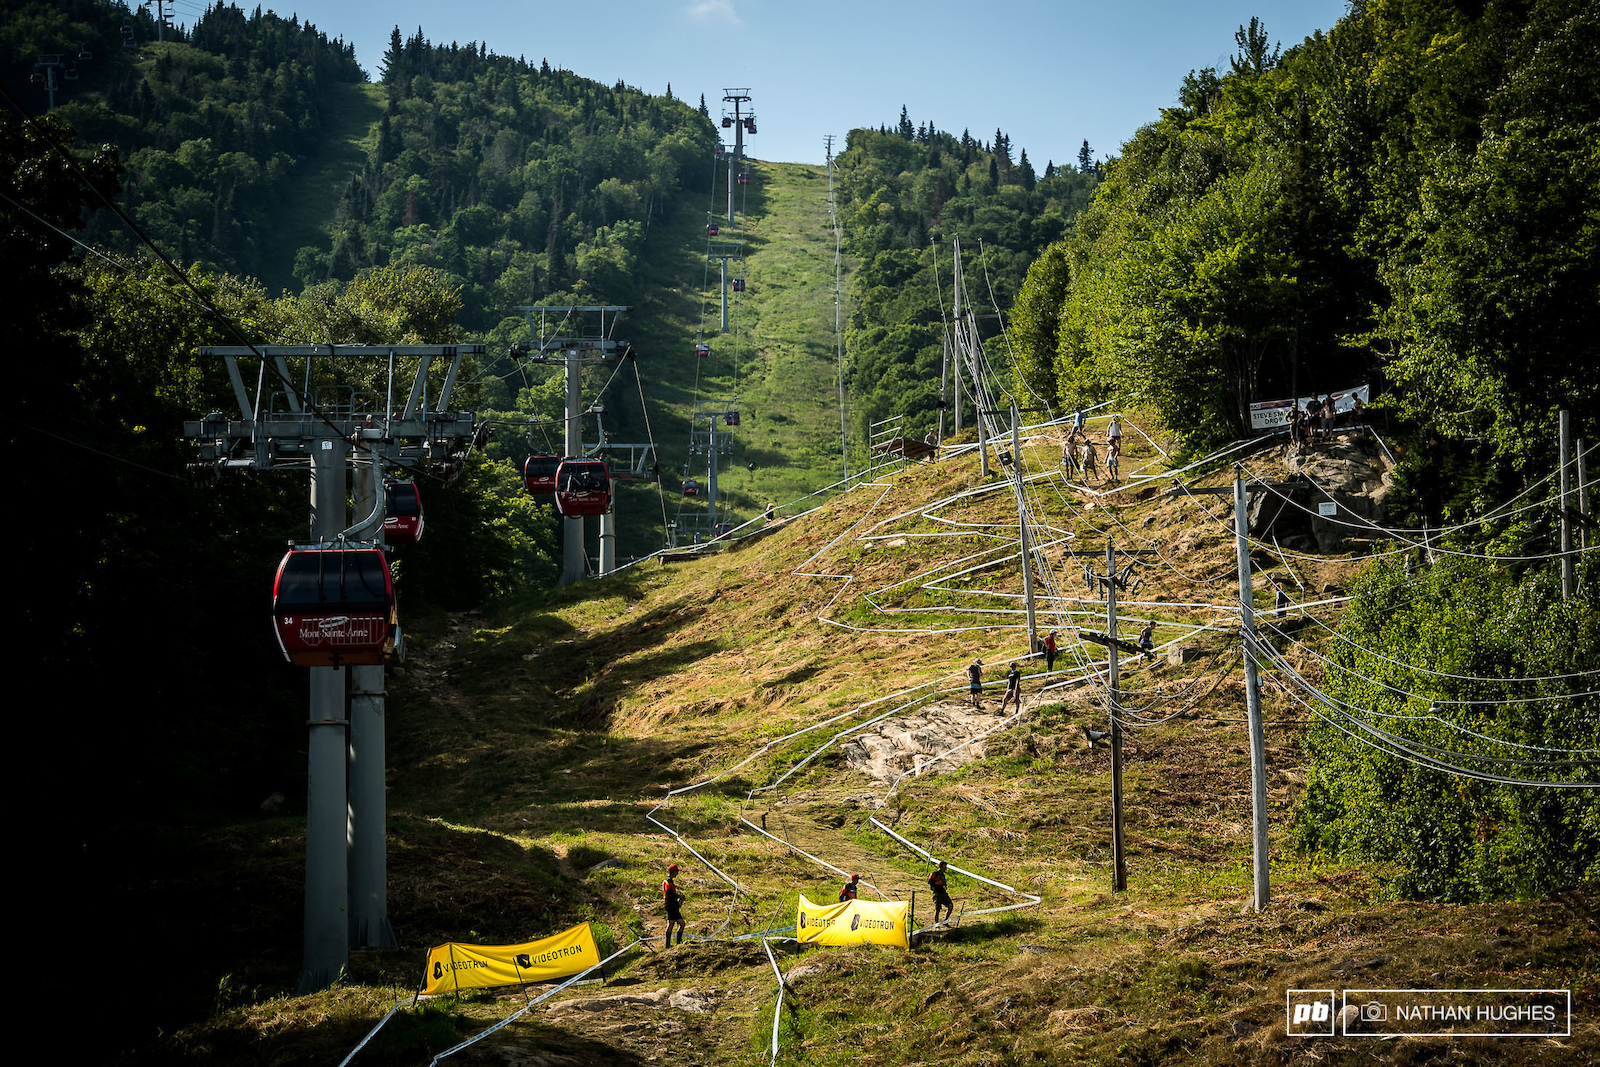 Welcome to the 26th Mont Sainte Anne WC.